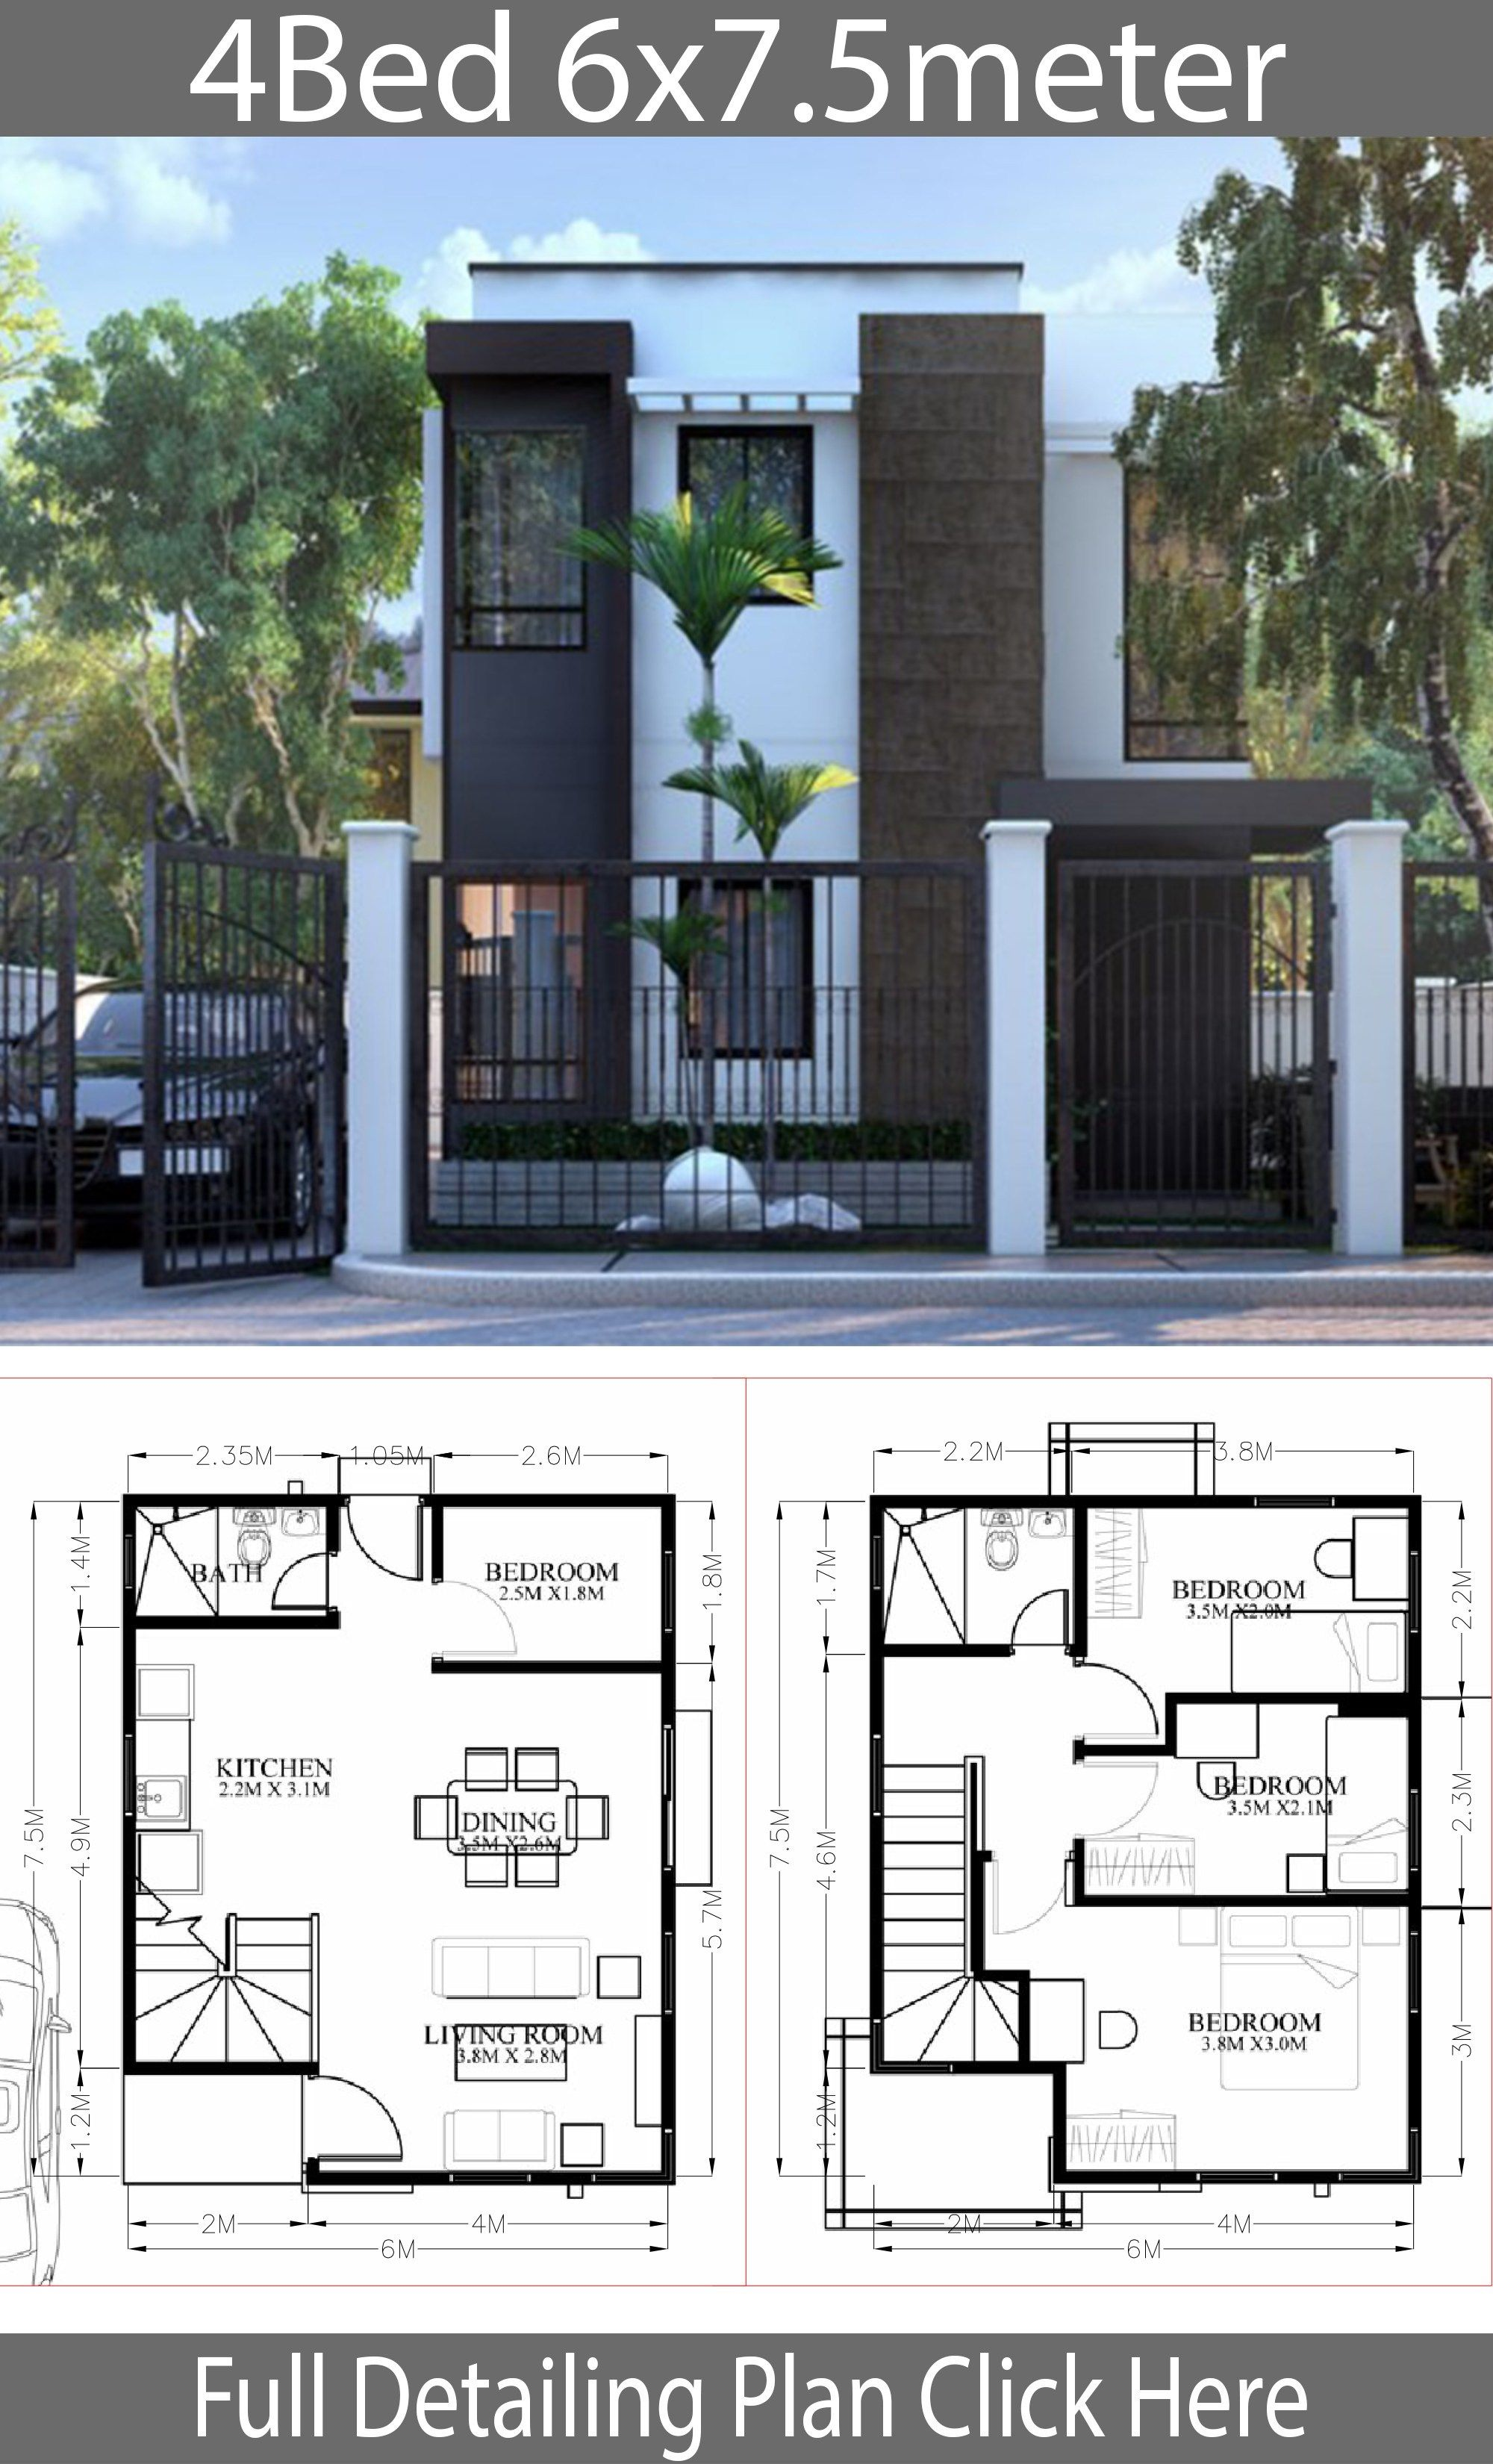 Small Home Design Plan 6x7 5m With 4 Bedrooms Home Design With Plan House Construction Plan Modern Small House Design Small House Design Plans